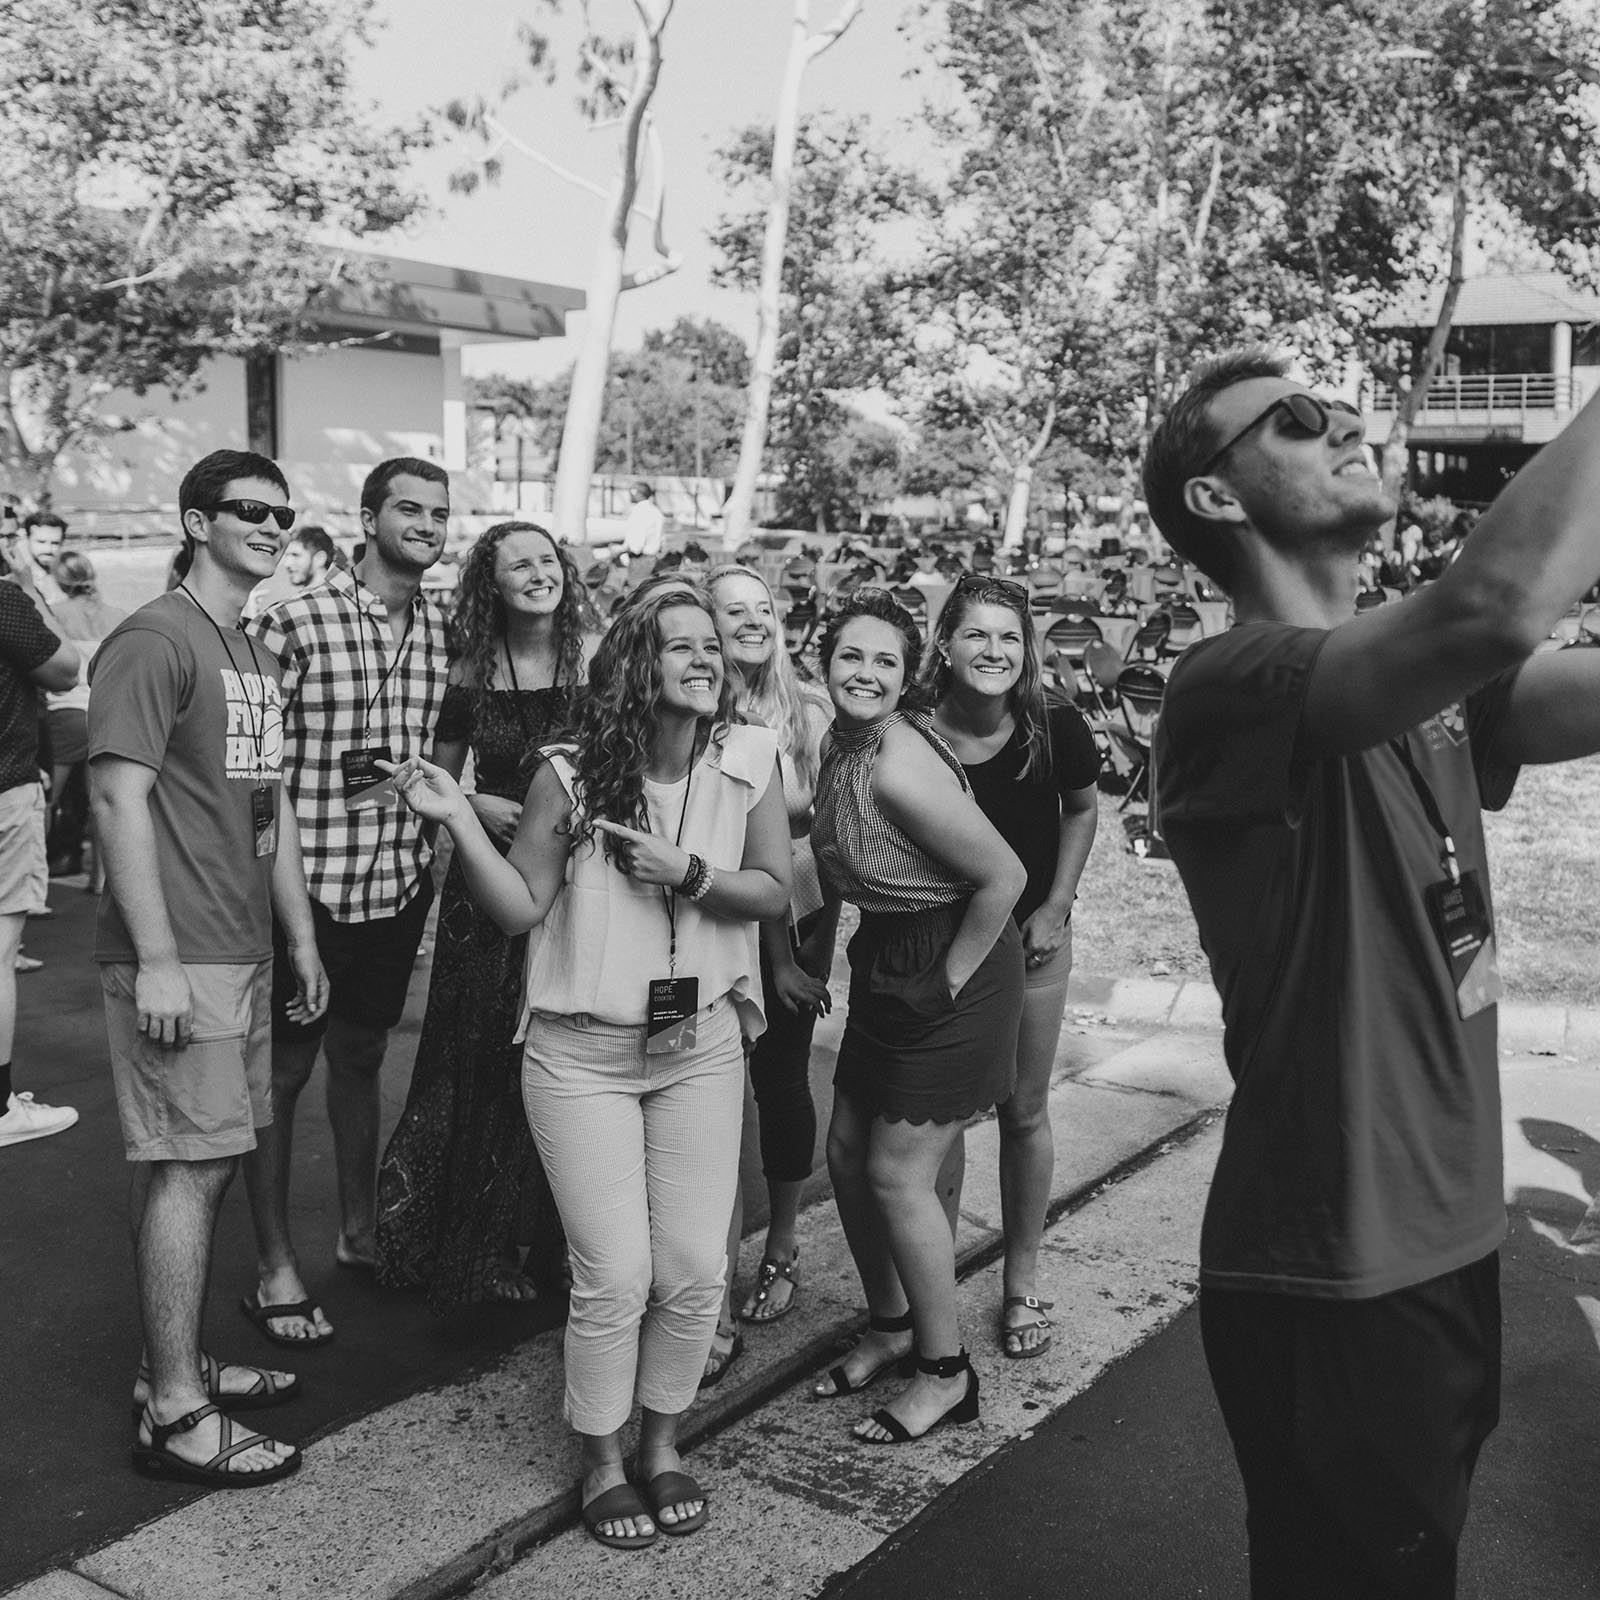 praxis academy is building a community of redemptive leaders across culture -